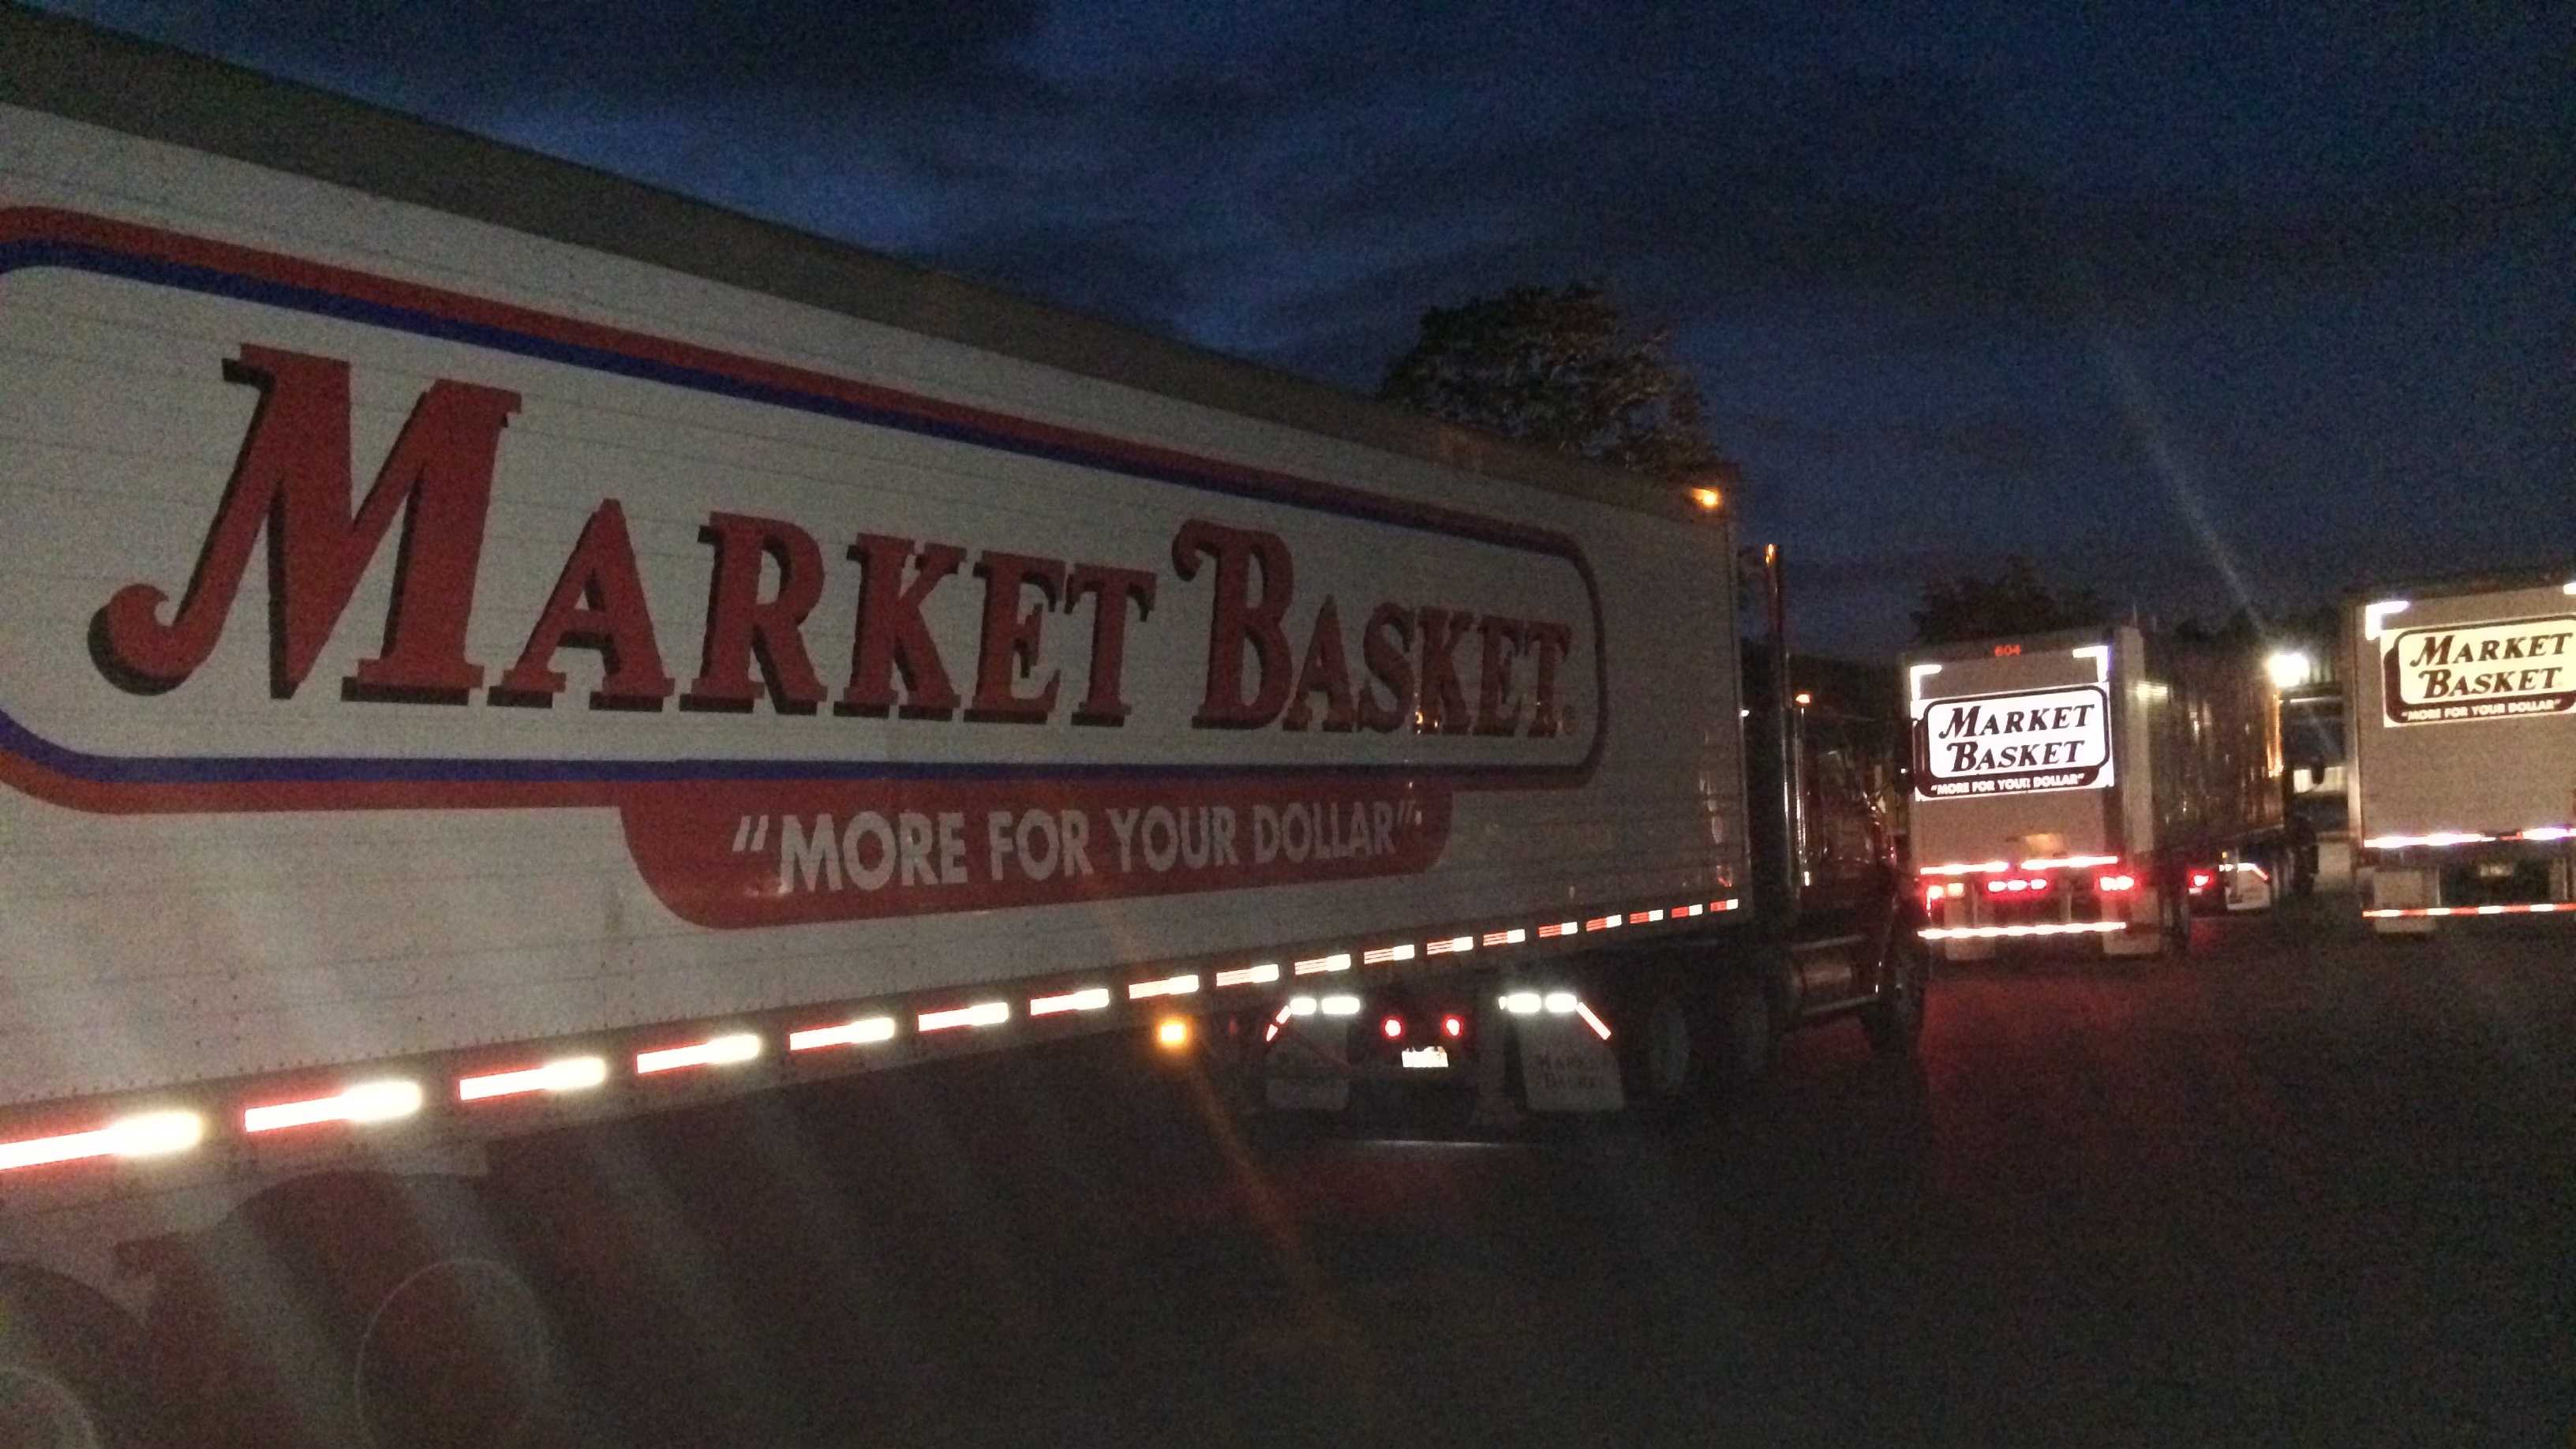 Market Basket trucks